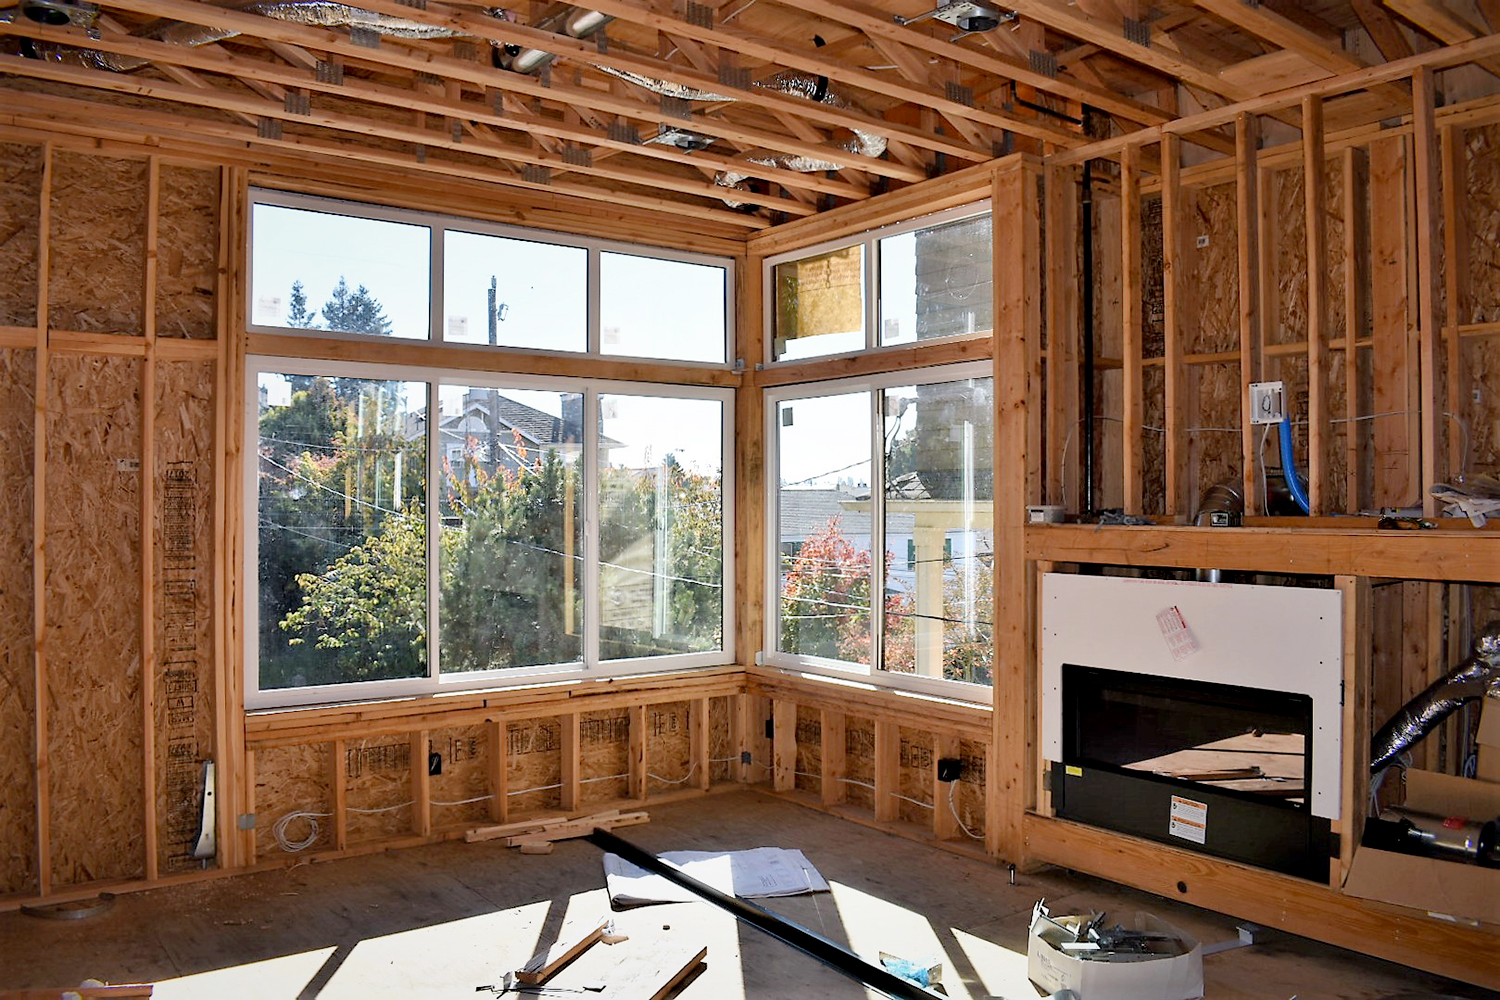 Green Lake New Construction - Master Bedroom in Process